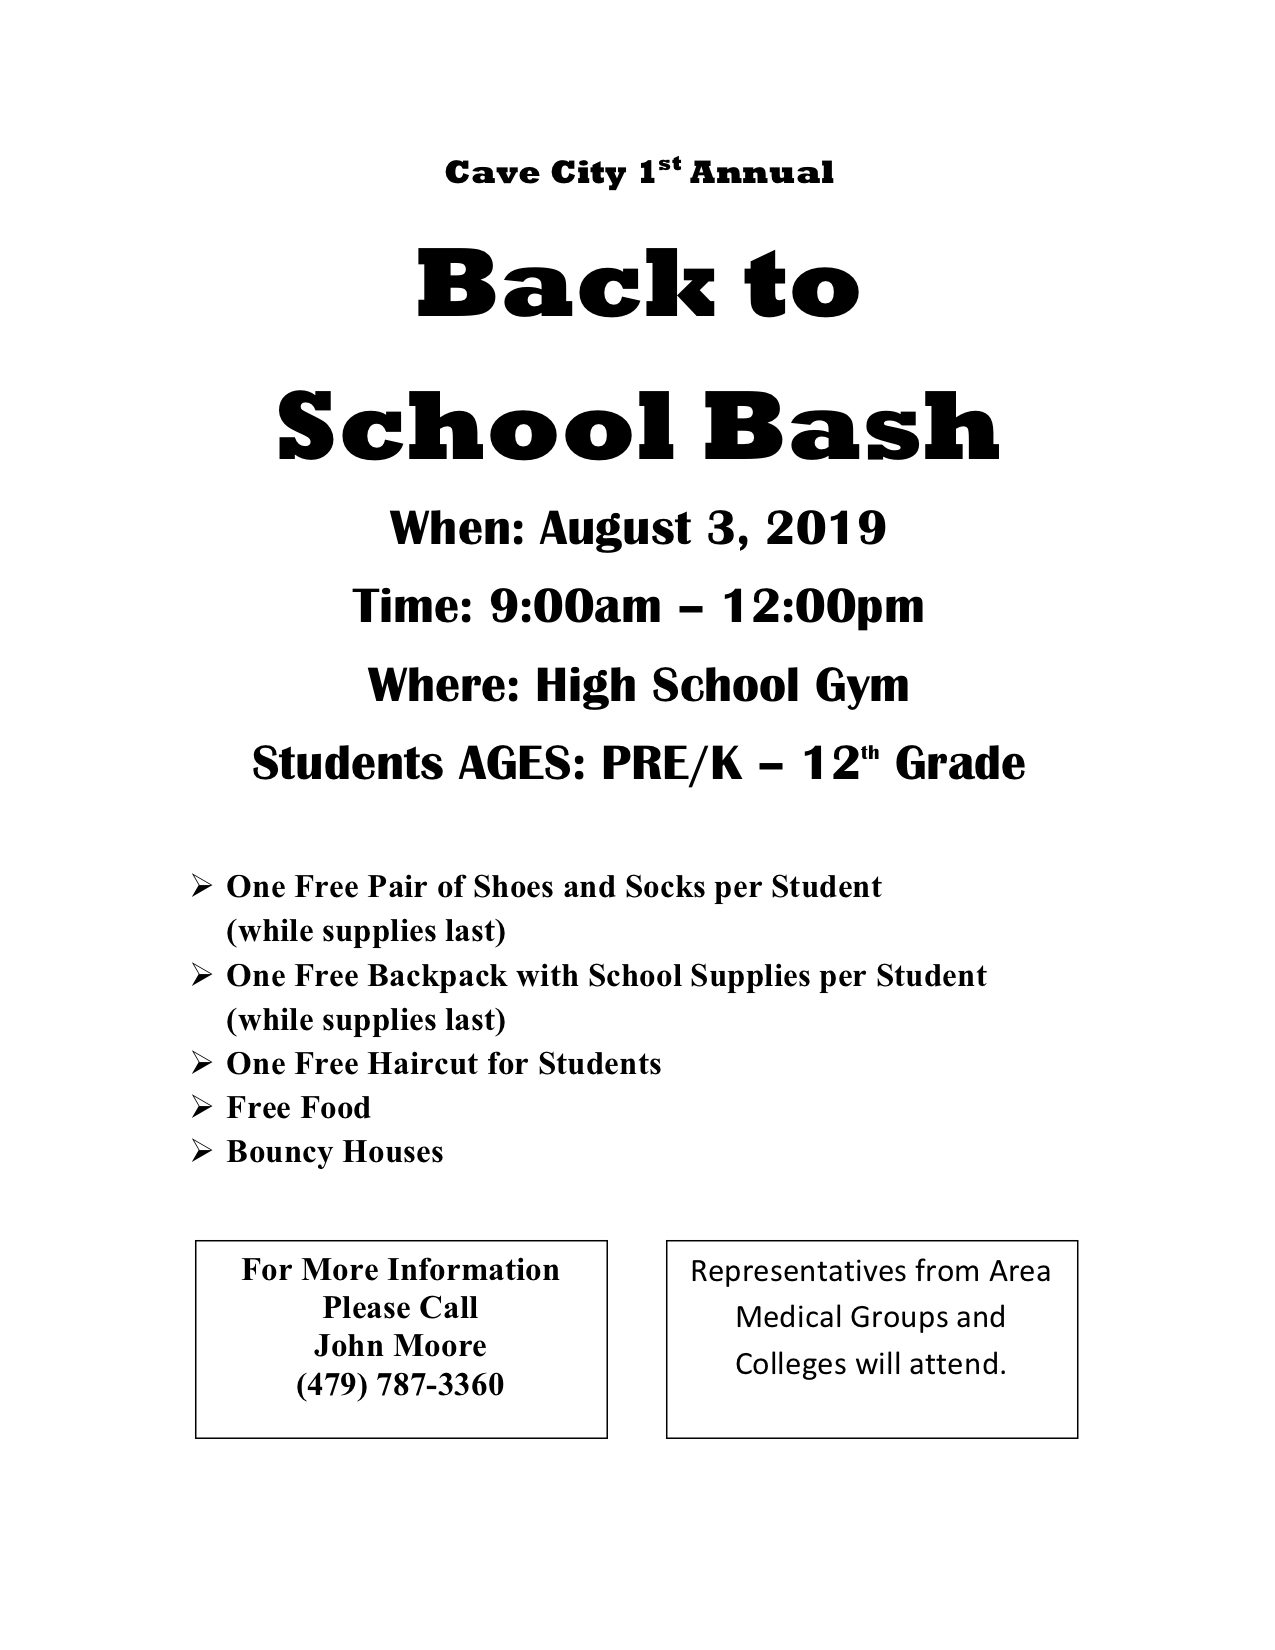 Back to School Bash 2019 - Flyer.jpg